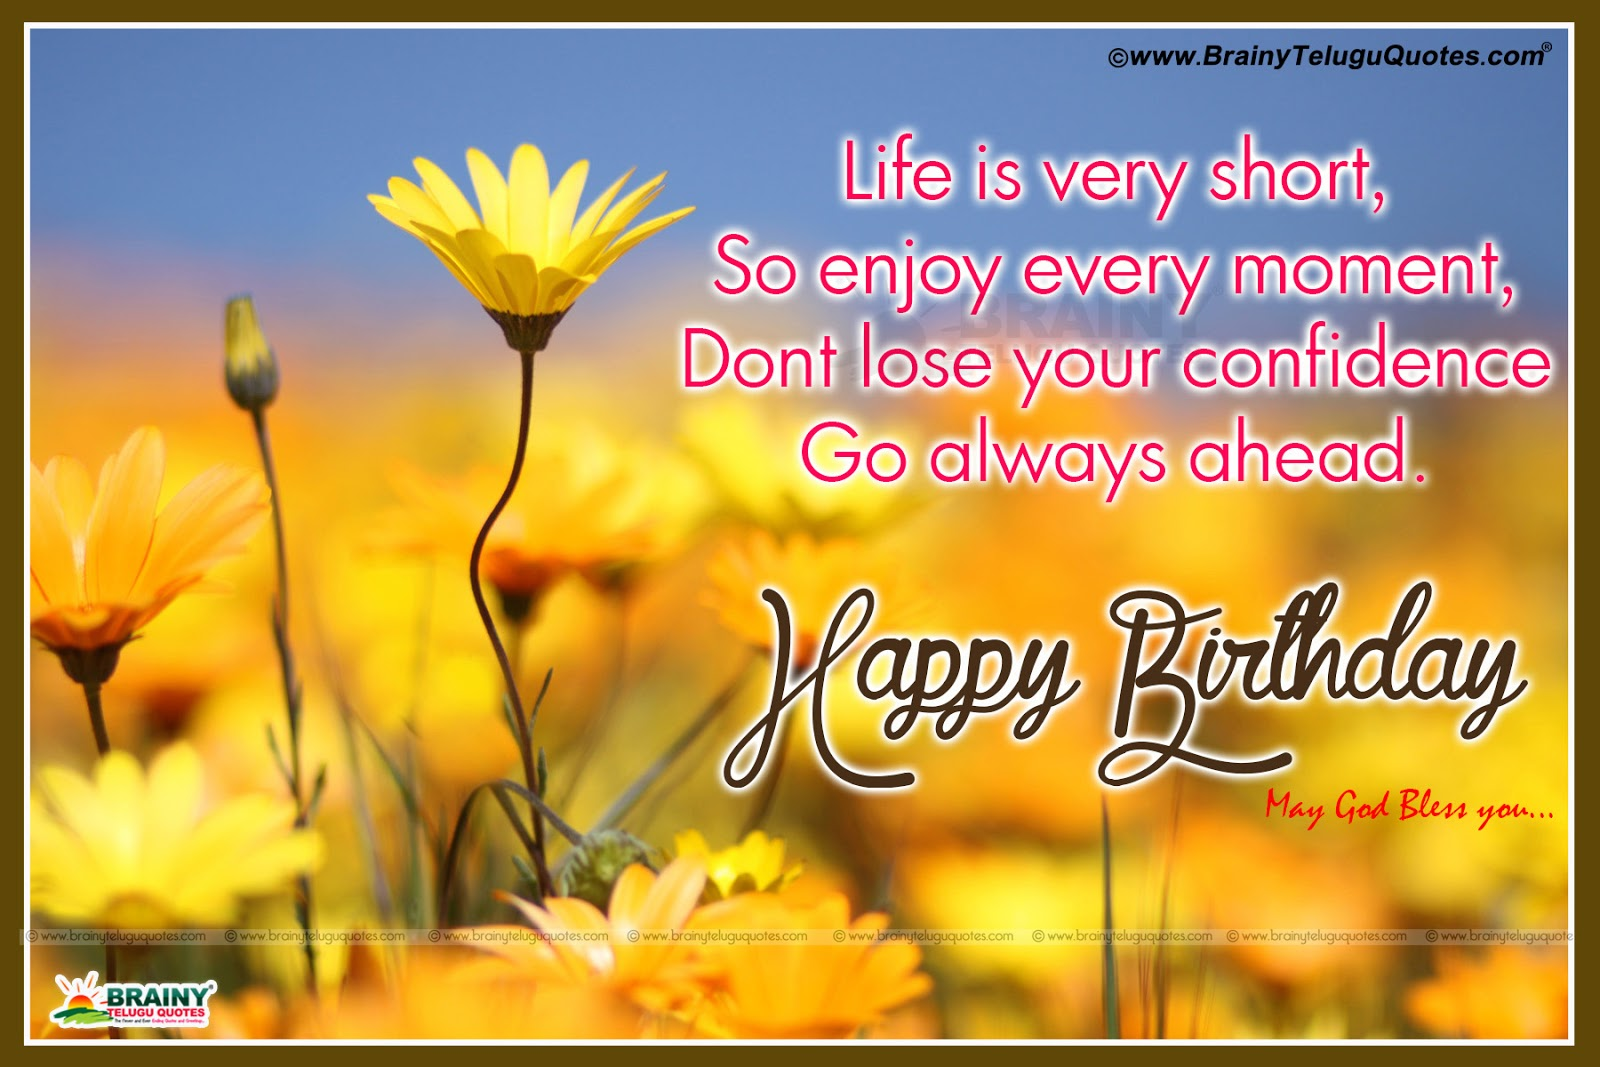 Birthday Wishes For Best Friend In English Images ~ Friend birthday quotes and messages greetings wishes